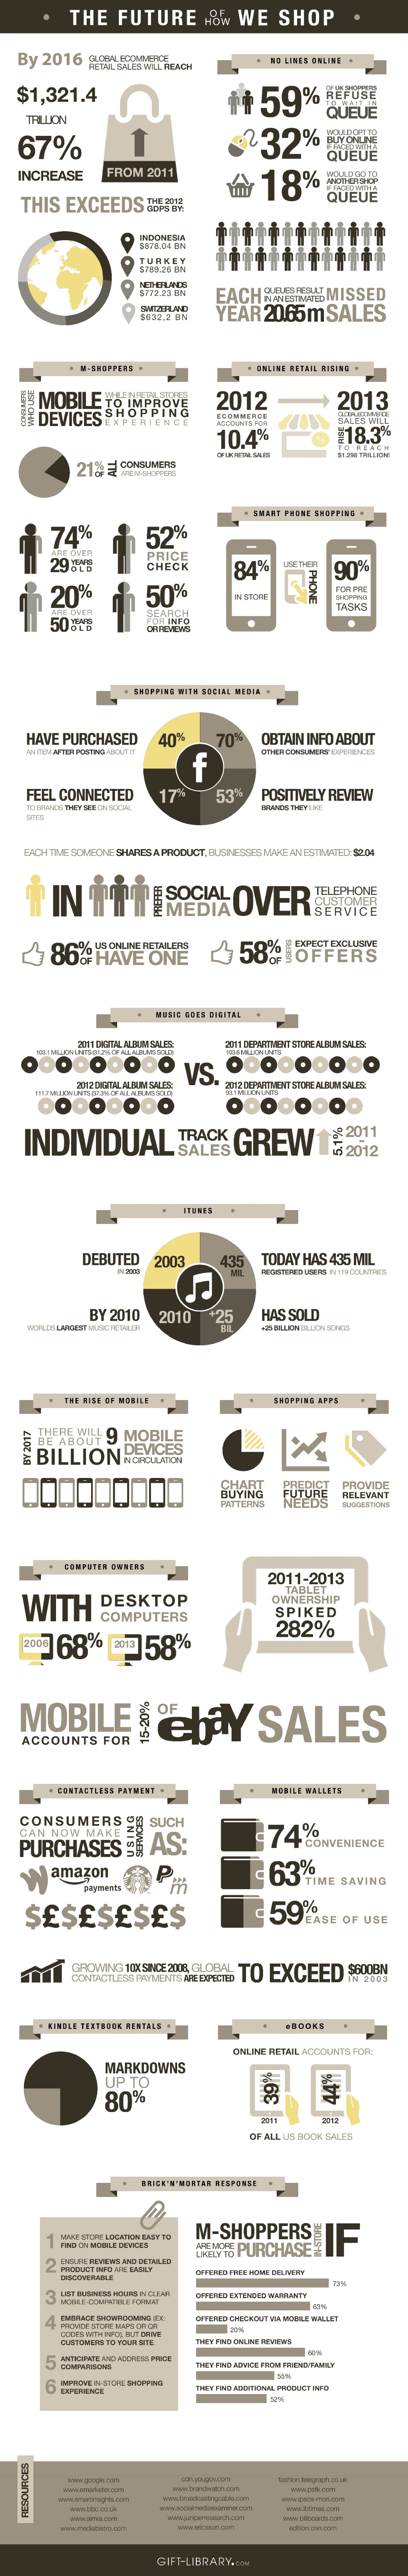 TheFutureofHowWeShop - Infographic